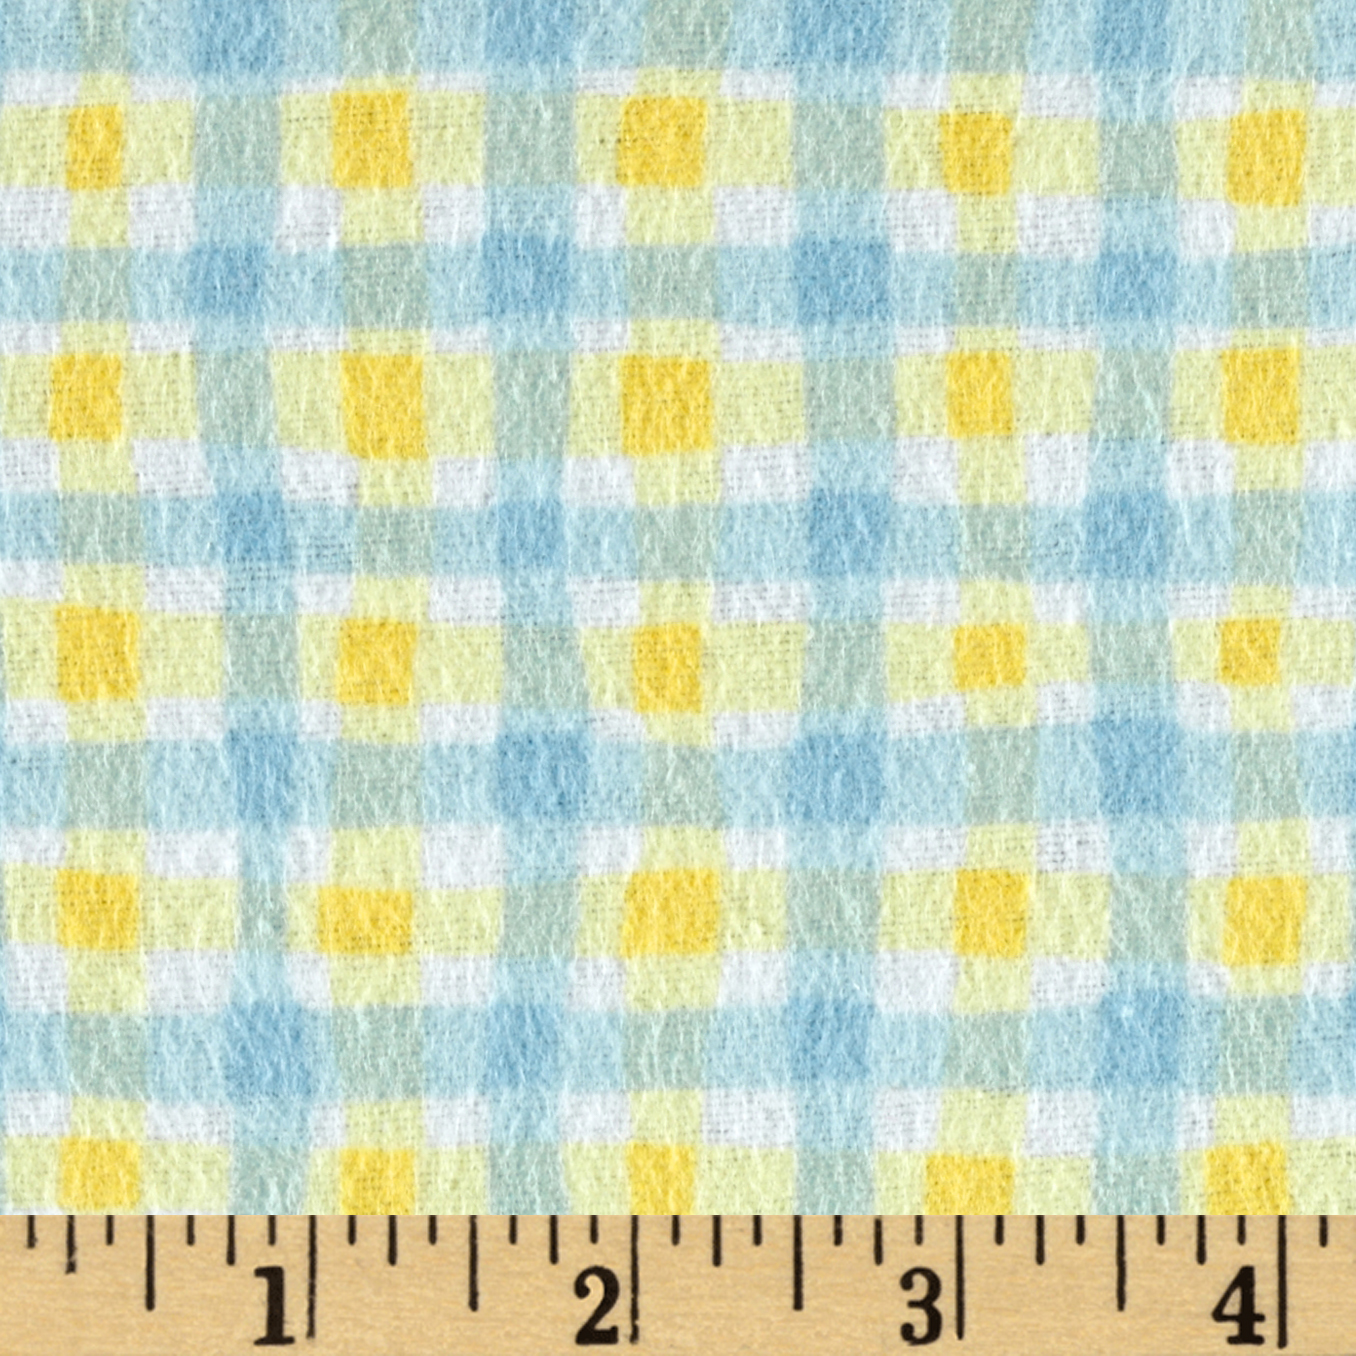 Cuddly Noah's Ark Flannel Wiggly Plaid Blue/Yellow Fabric